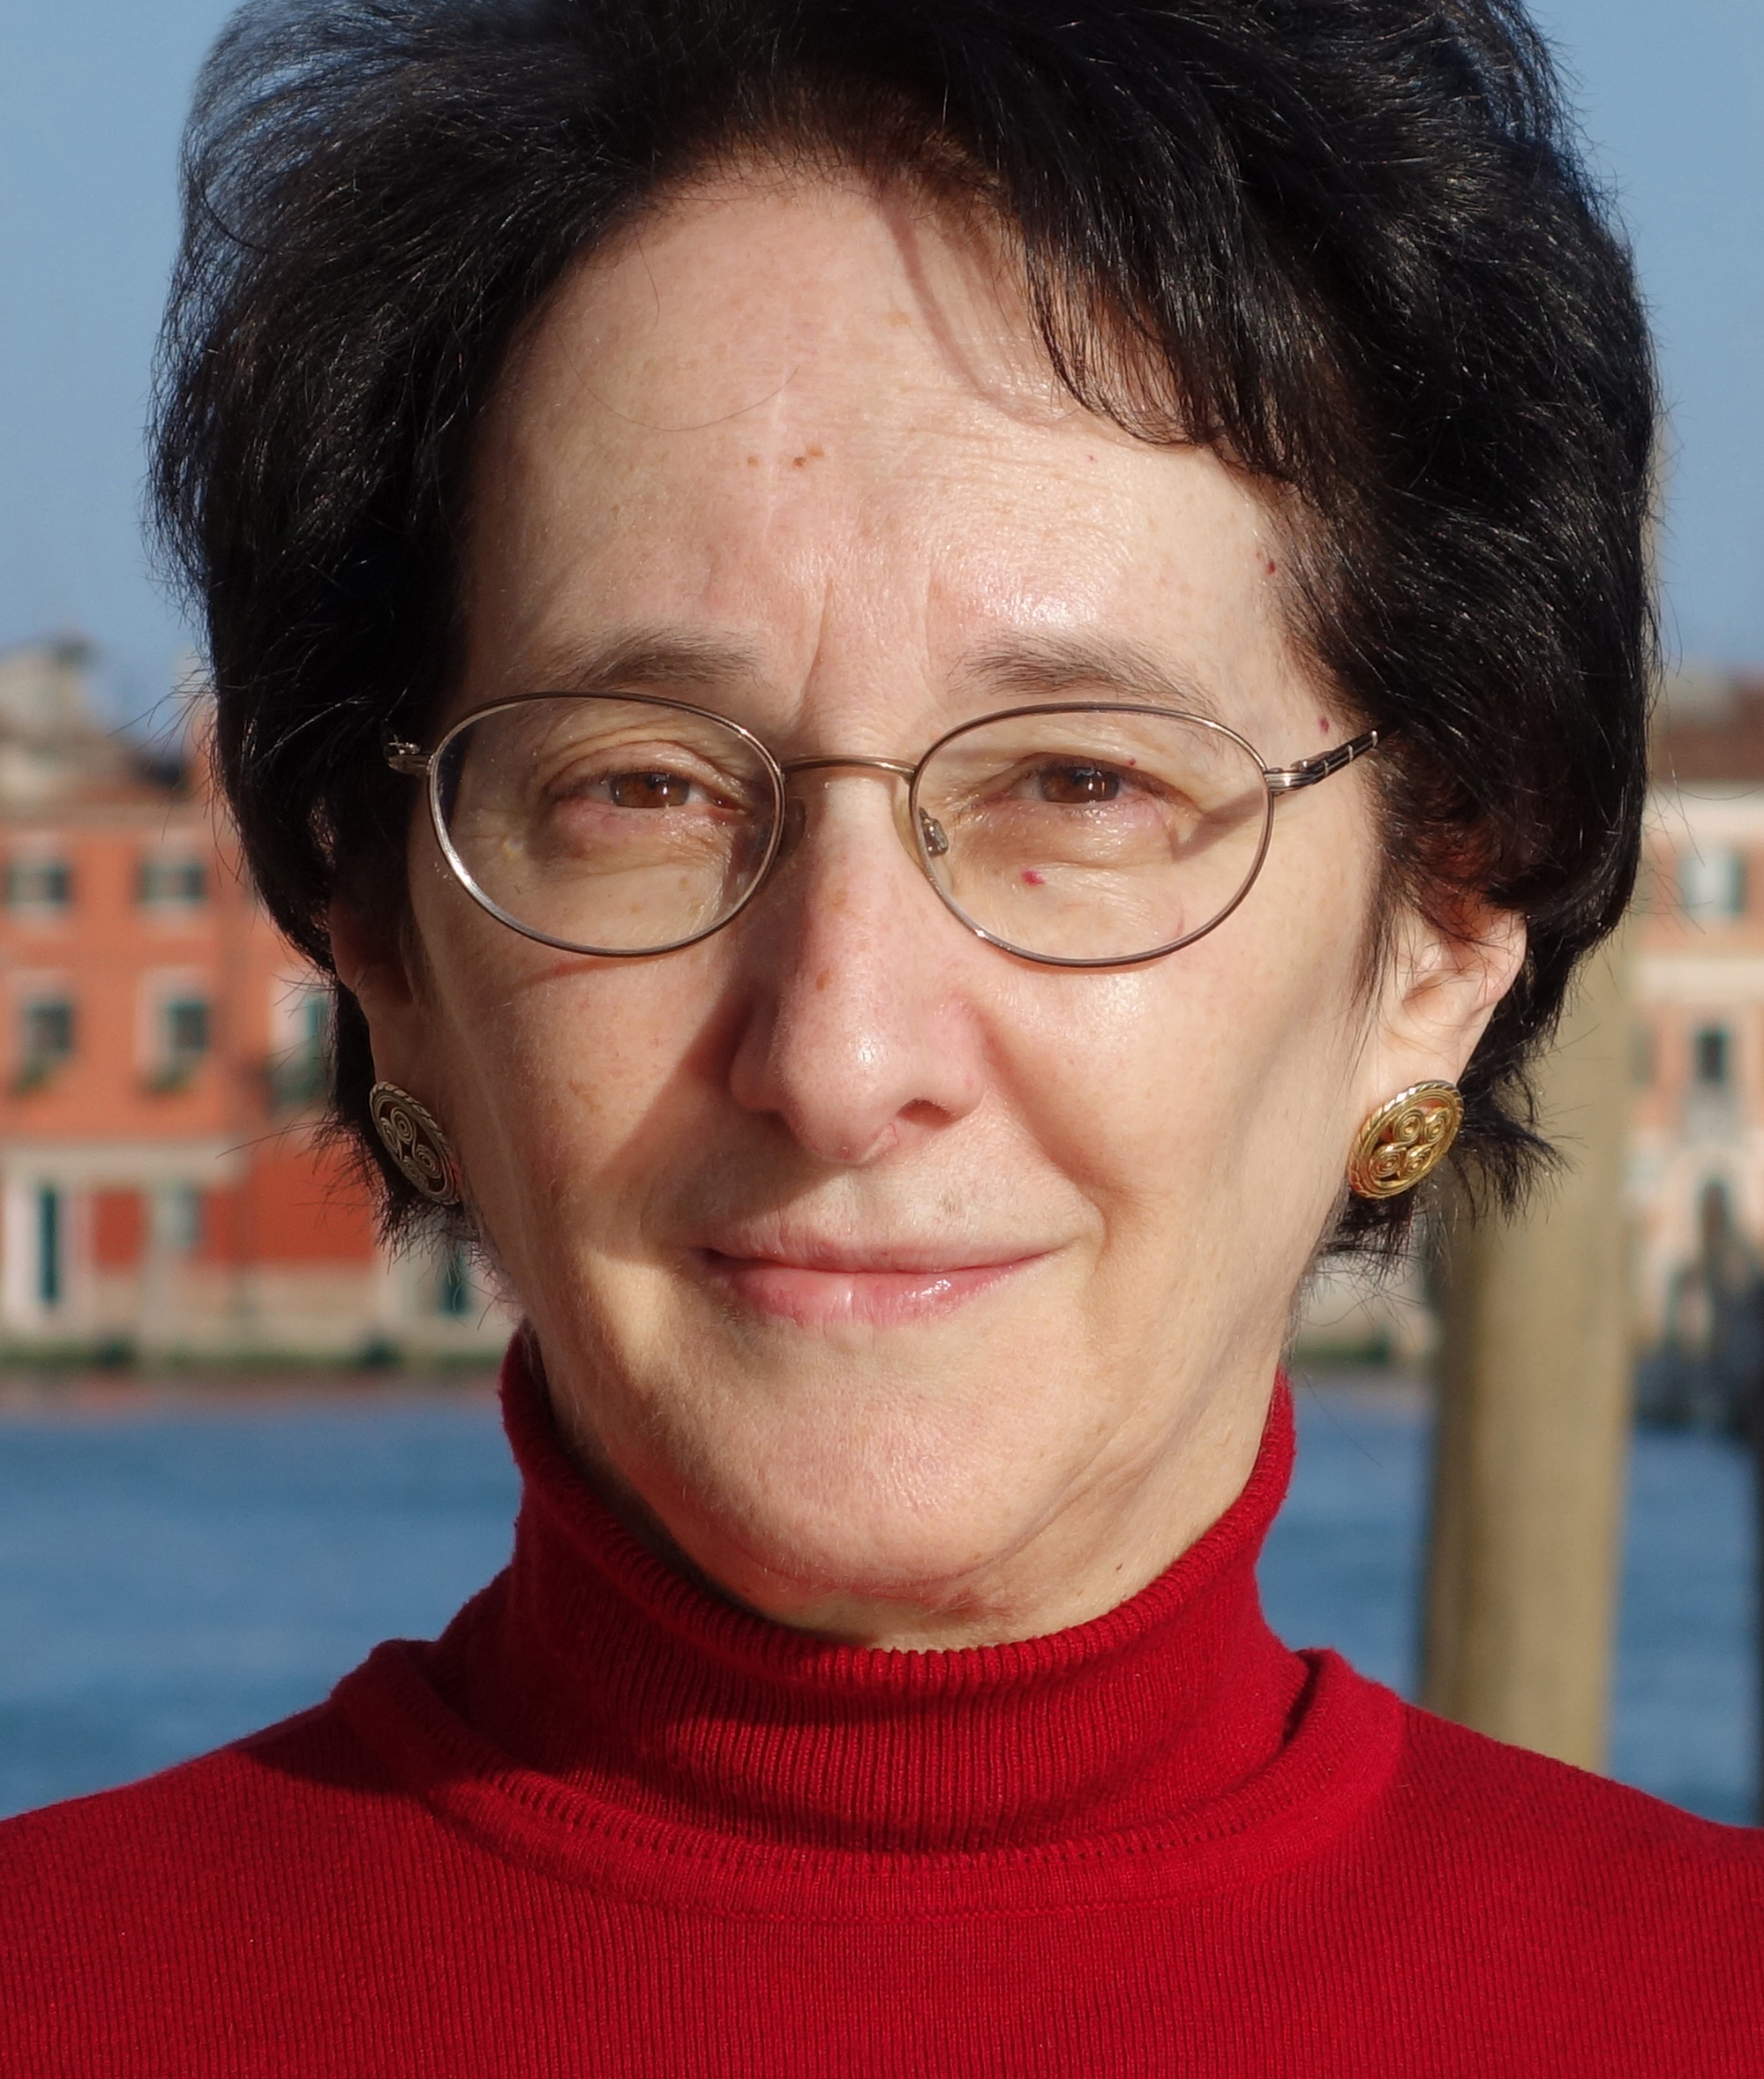 Linguist Naomi Baron is an expert on technology and language.